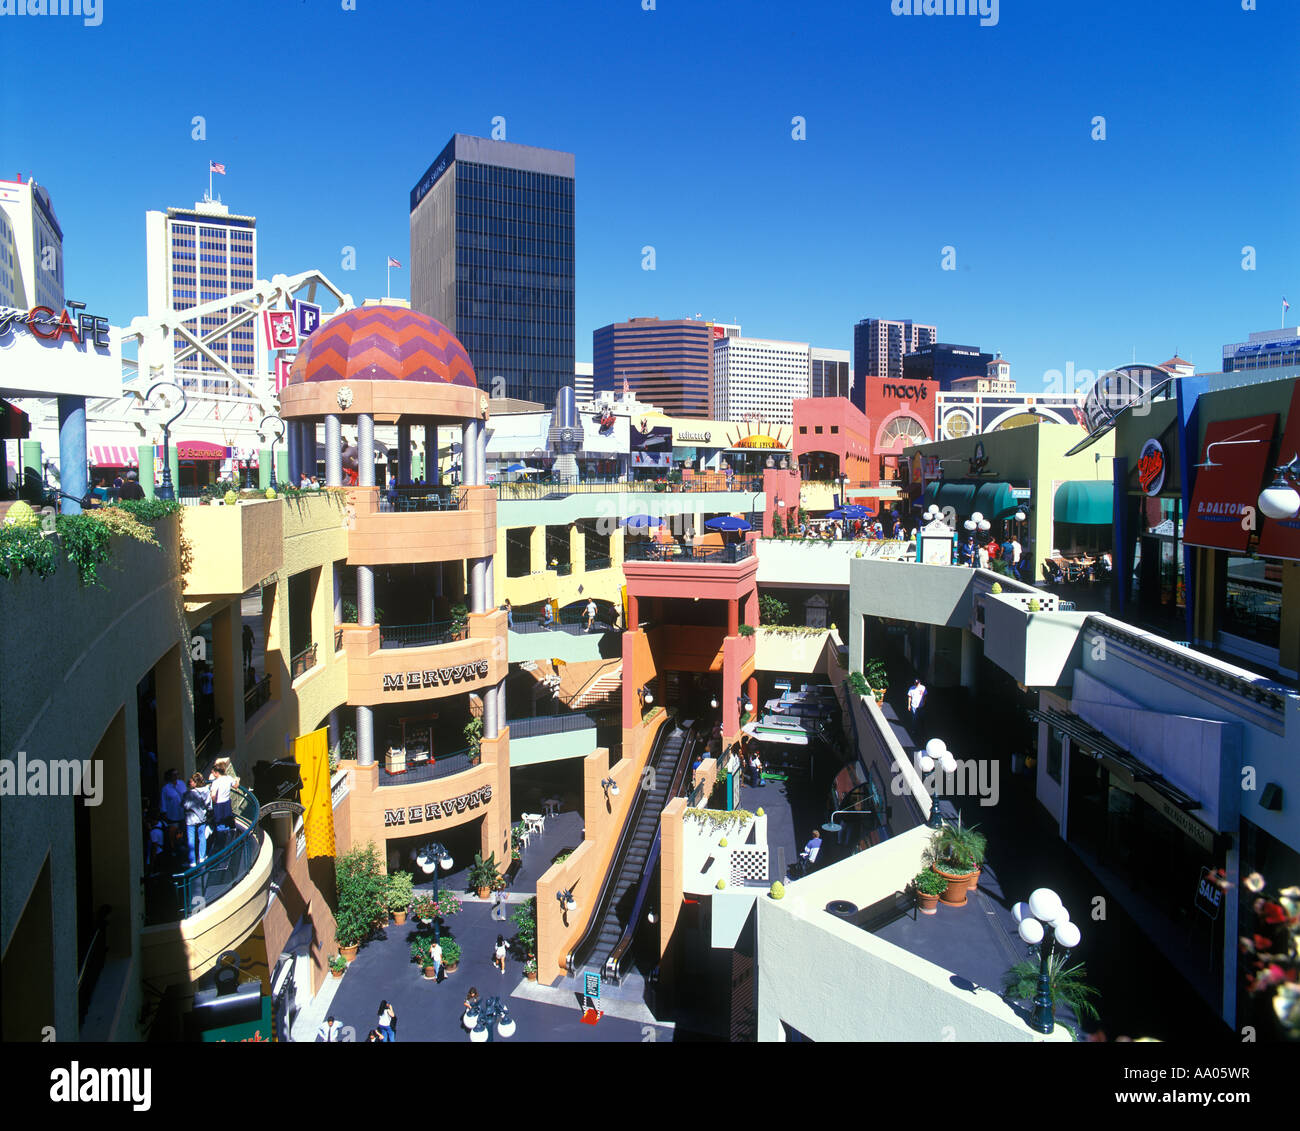 Jun 17,  · In the heart of downtown San Diego, the Gaslamp is the entry point for not only great restaurants, bars, and hotels but excellent shopping! 16 city blocks are filled with fascinating boutiques, national retailers, and professional services all within easy walking distance.5/5.